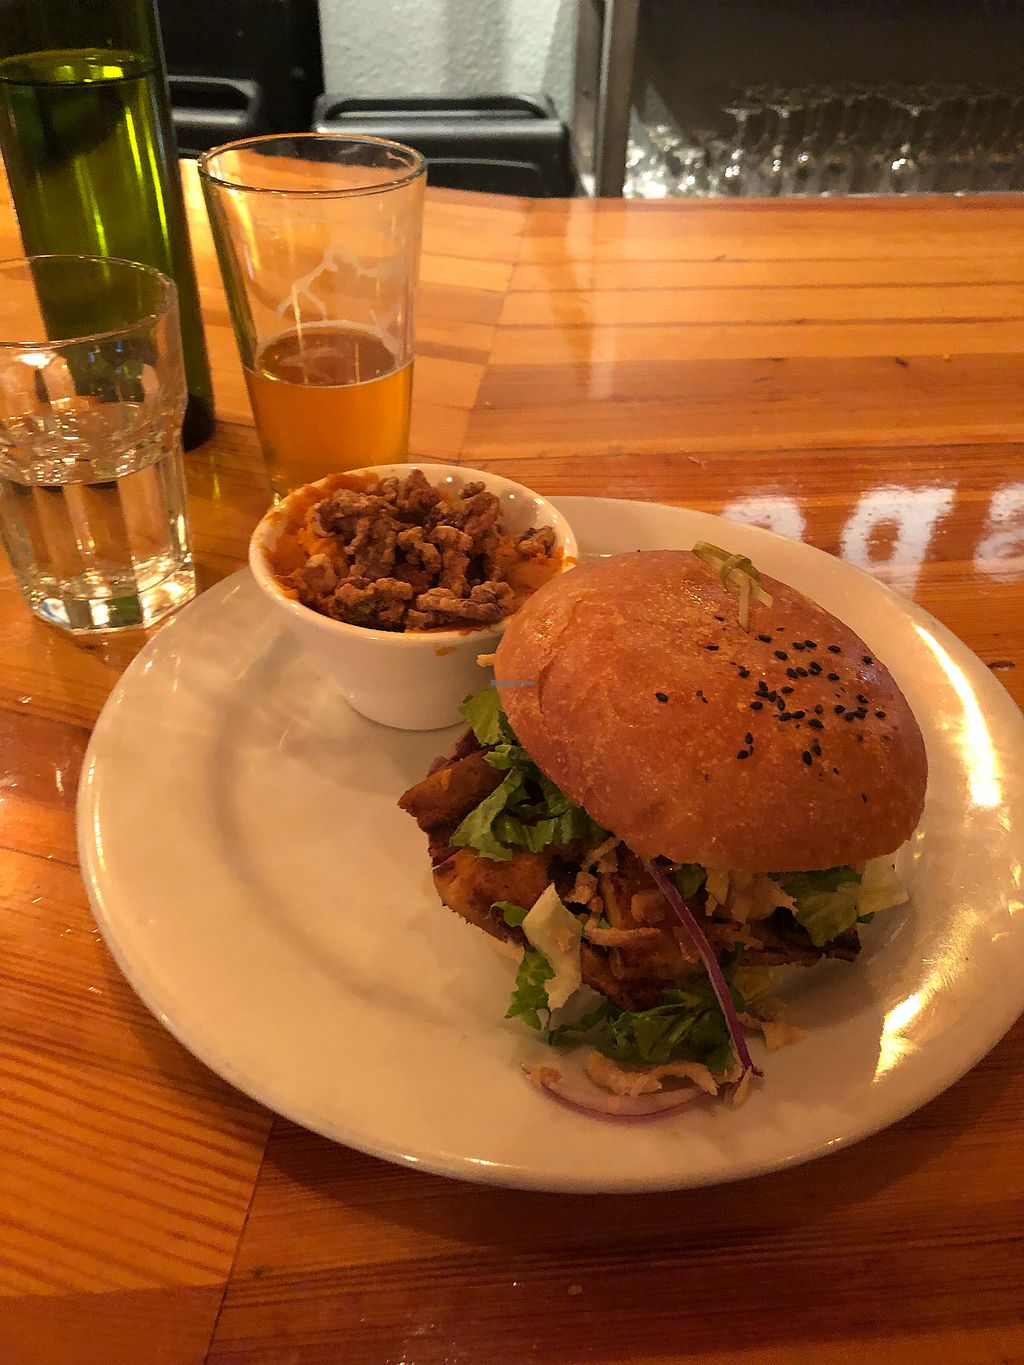 """Photo of Watercourse Foods  by <a href=""""/members/profile/ehjay"""">ehjay</a> <br/>Atlas burger and candied yams  <br/> March 29, 2018  - <a href='/contact/abuse/image/1754/377603'>Report</a>"""